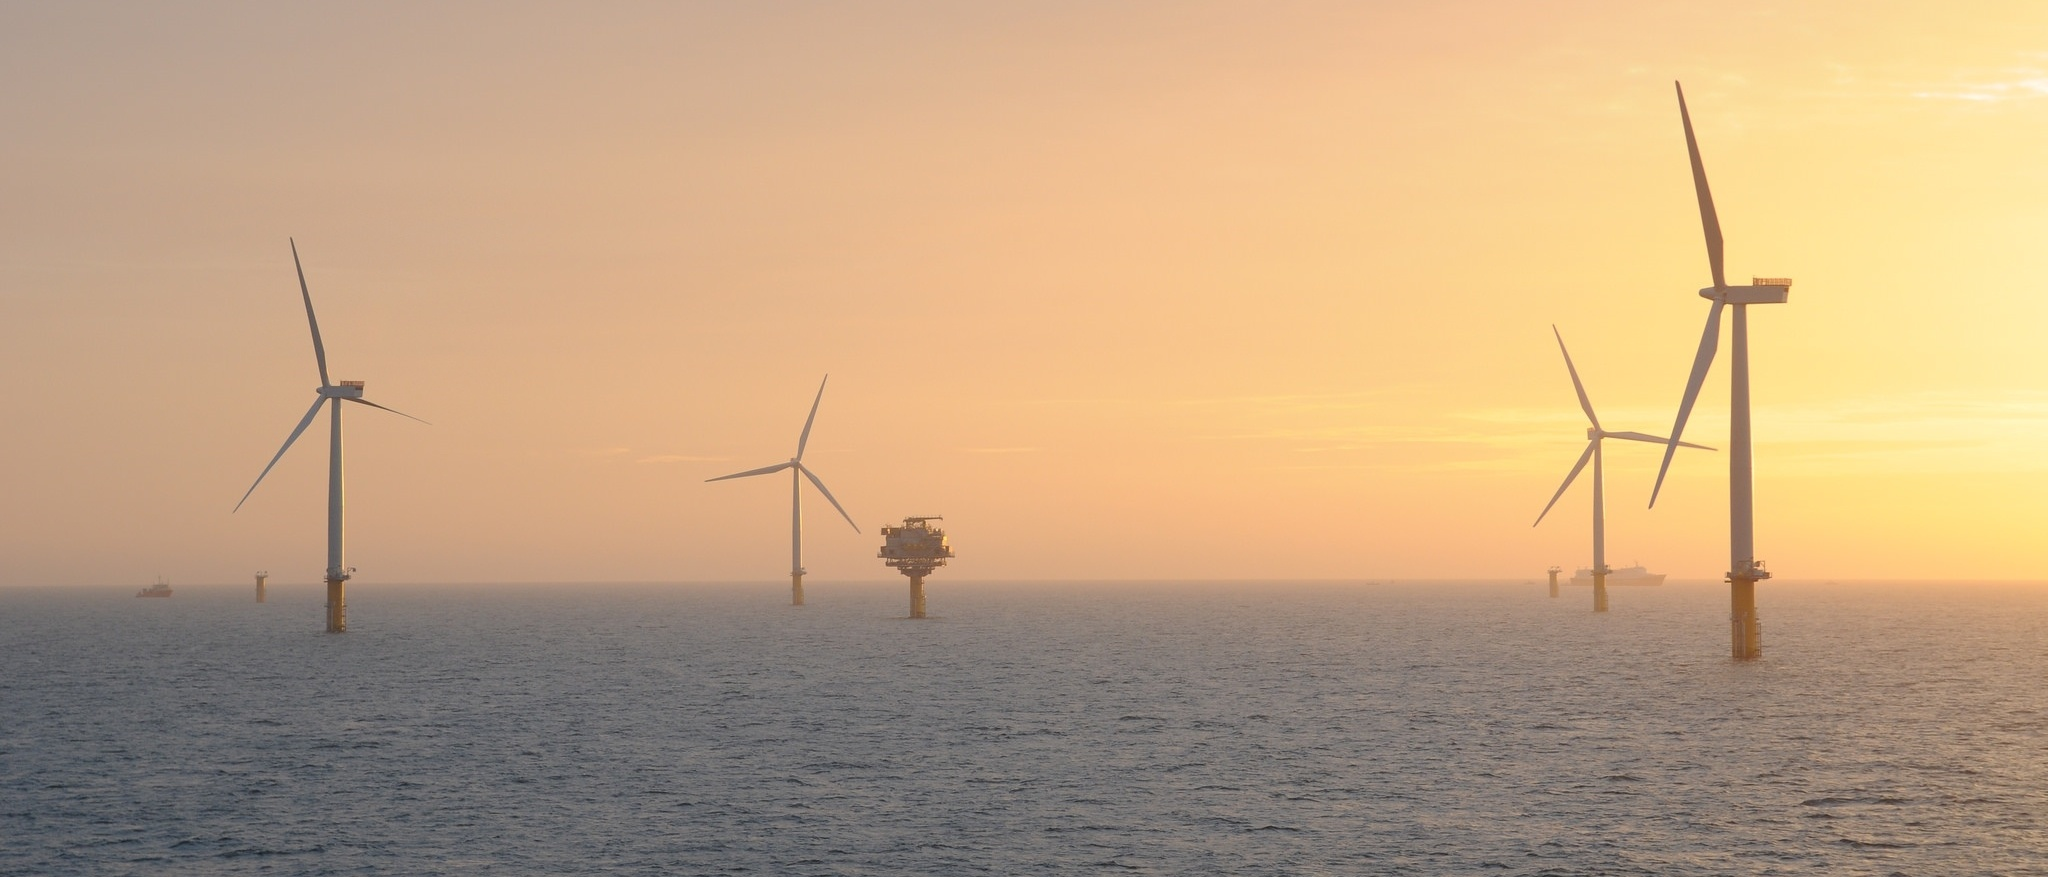 sheringham-shoal-flickr-starkraft-offshore-wind-edit.jpg